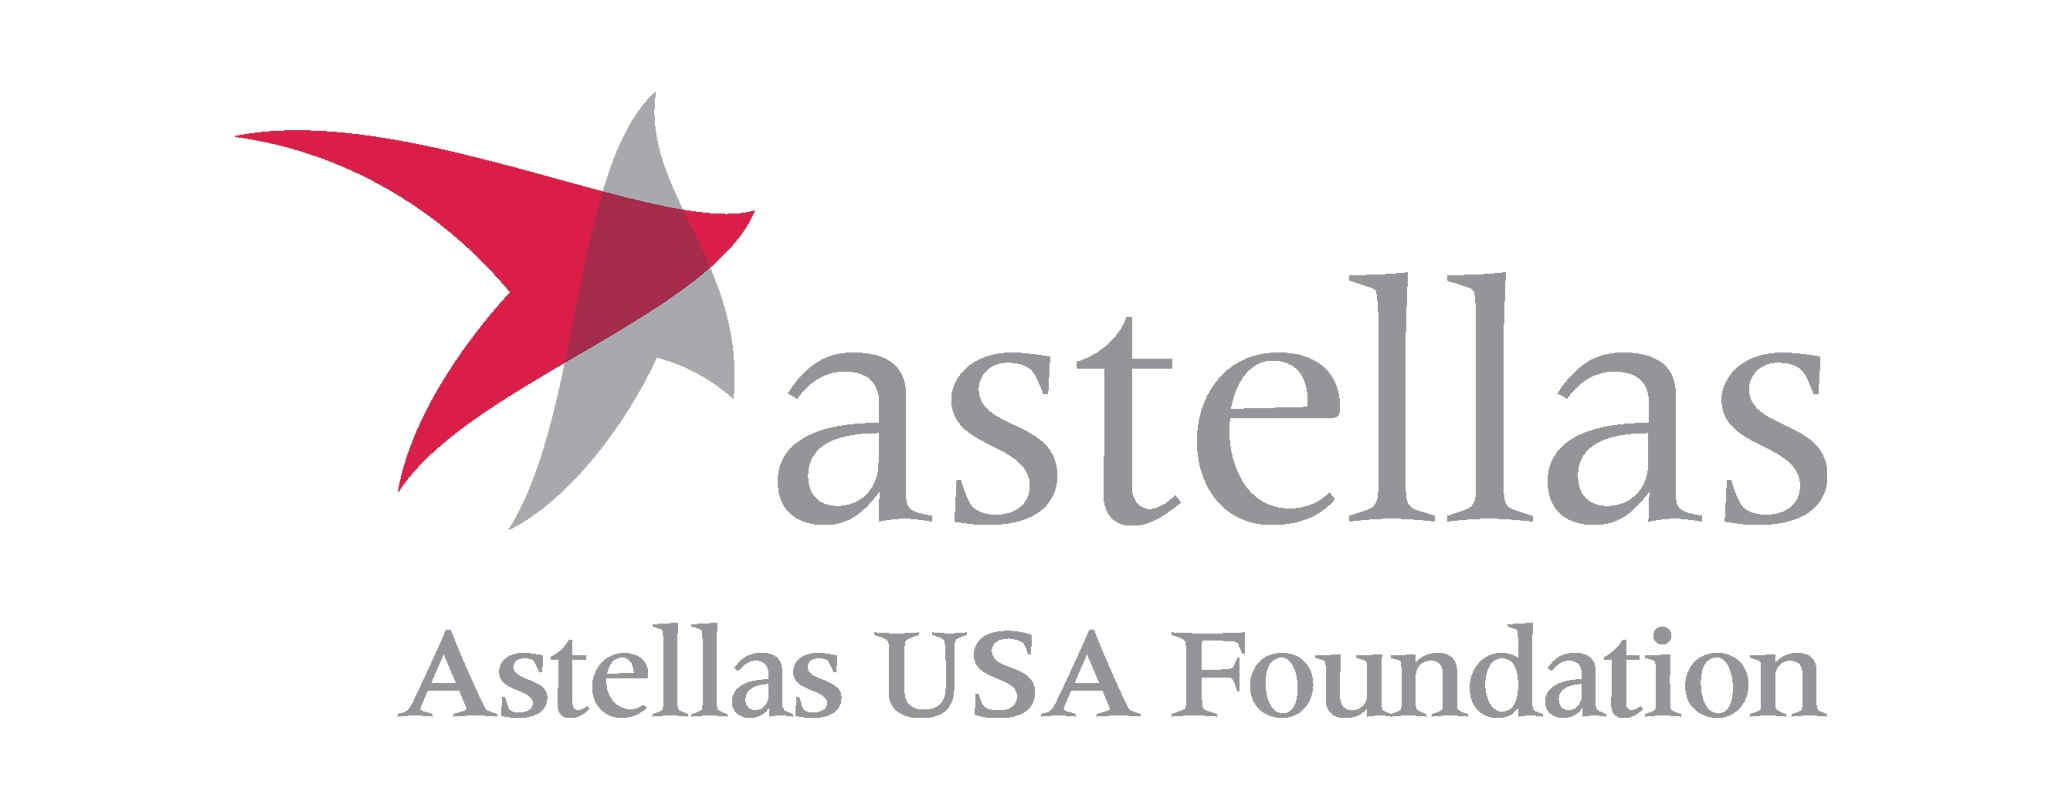 Astellas USA Foundationlogo